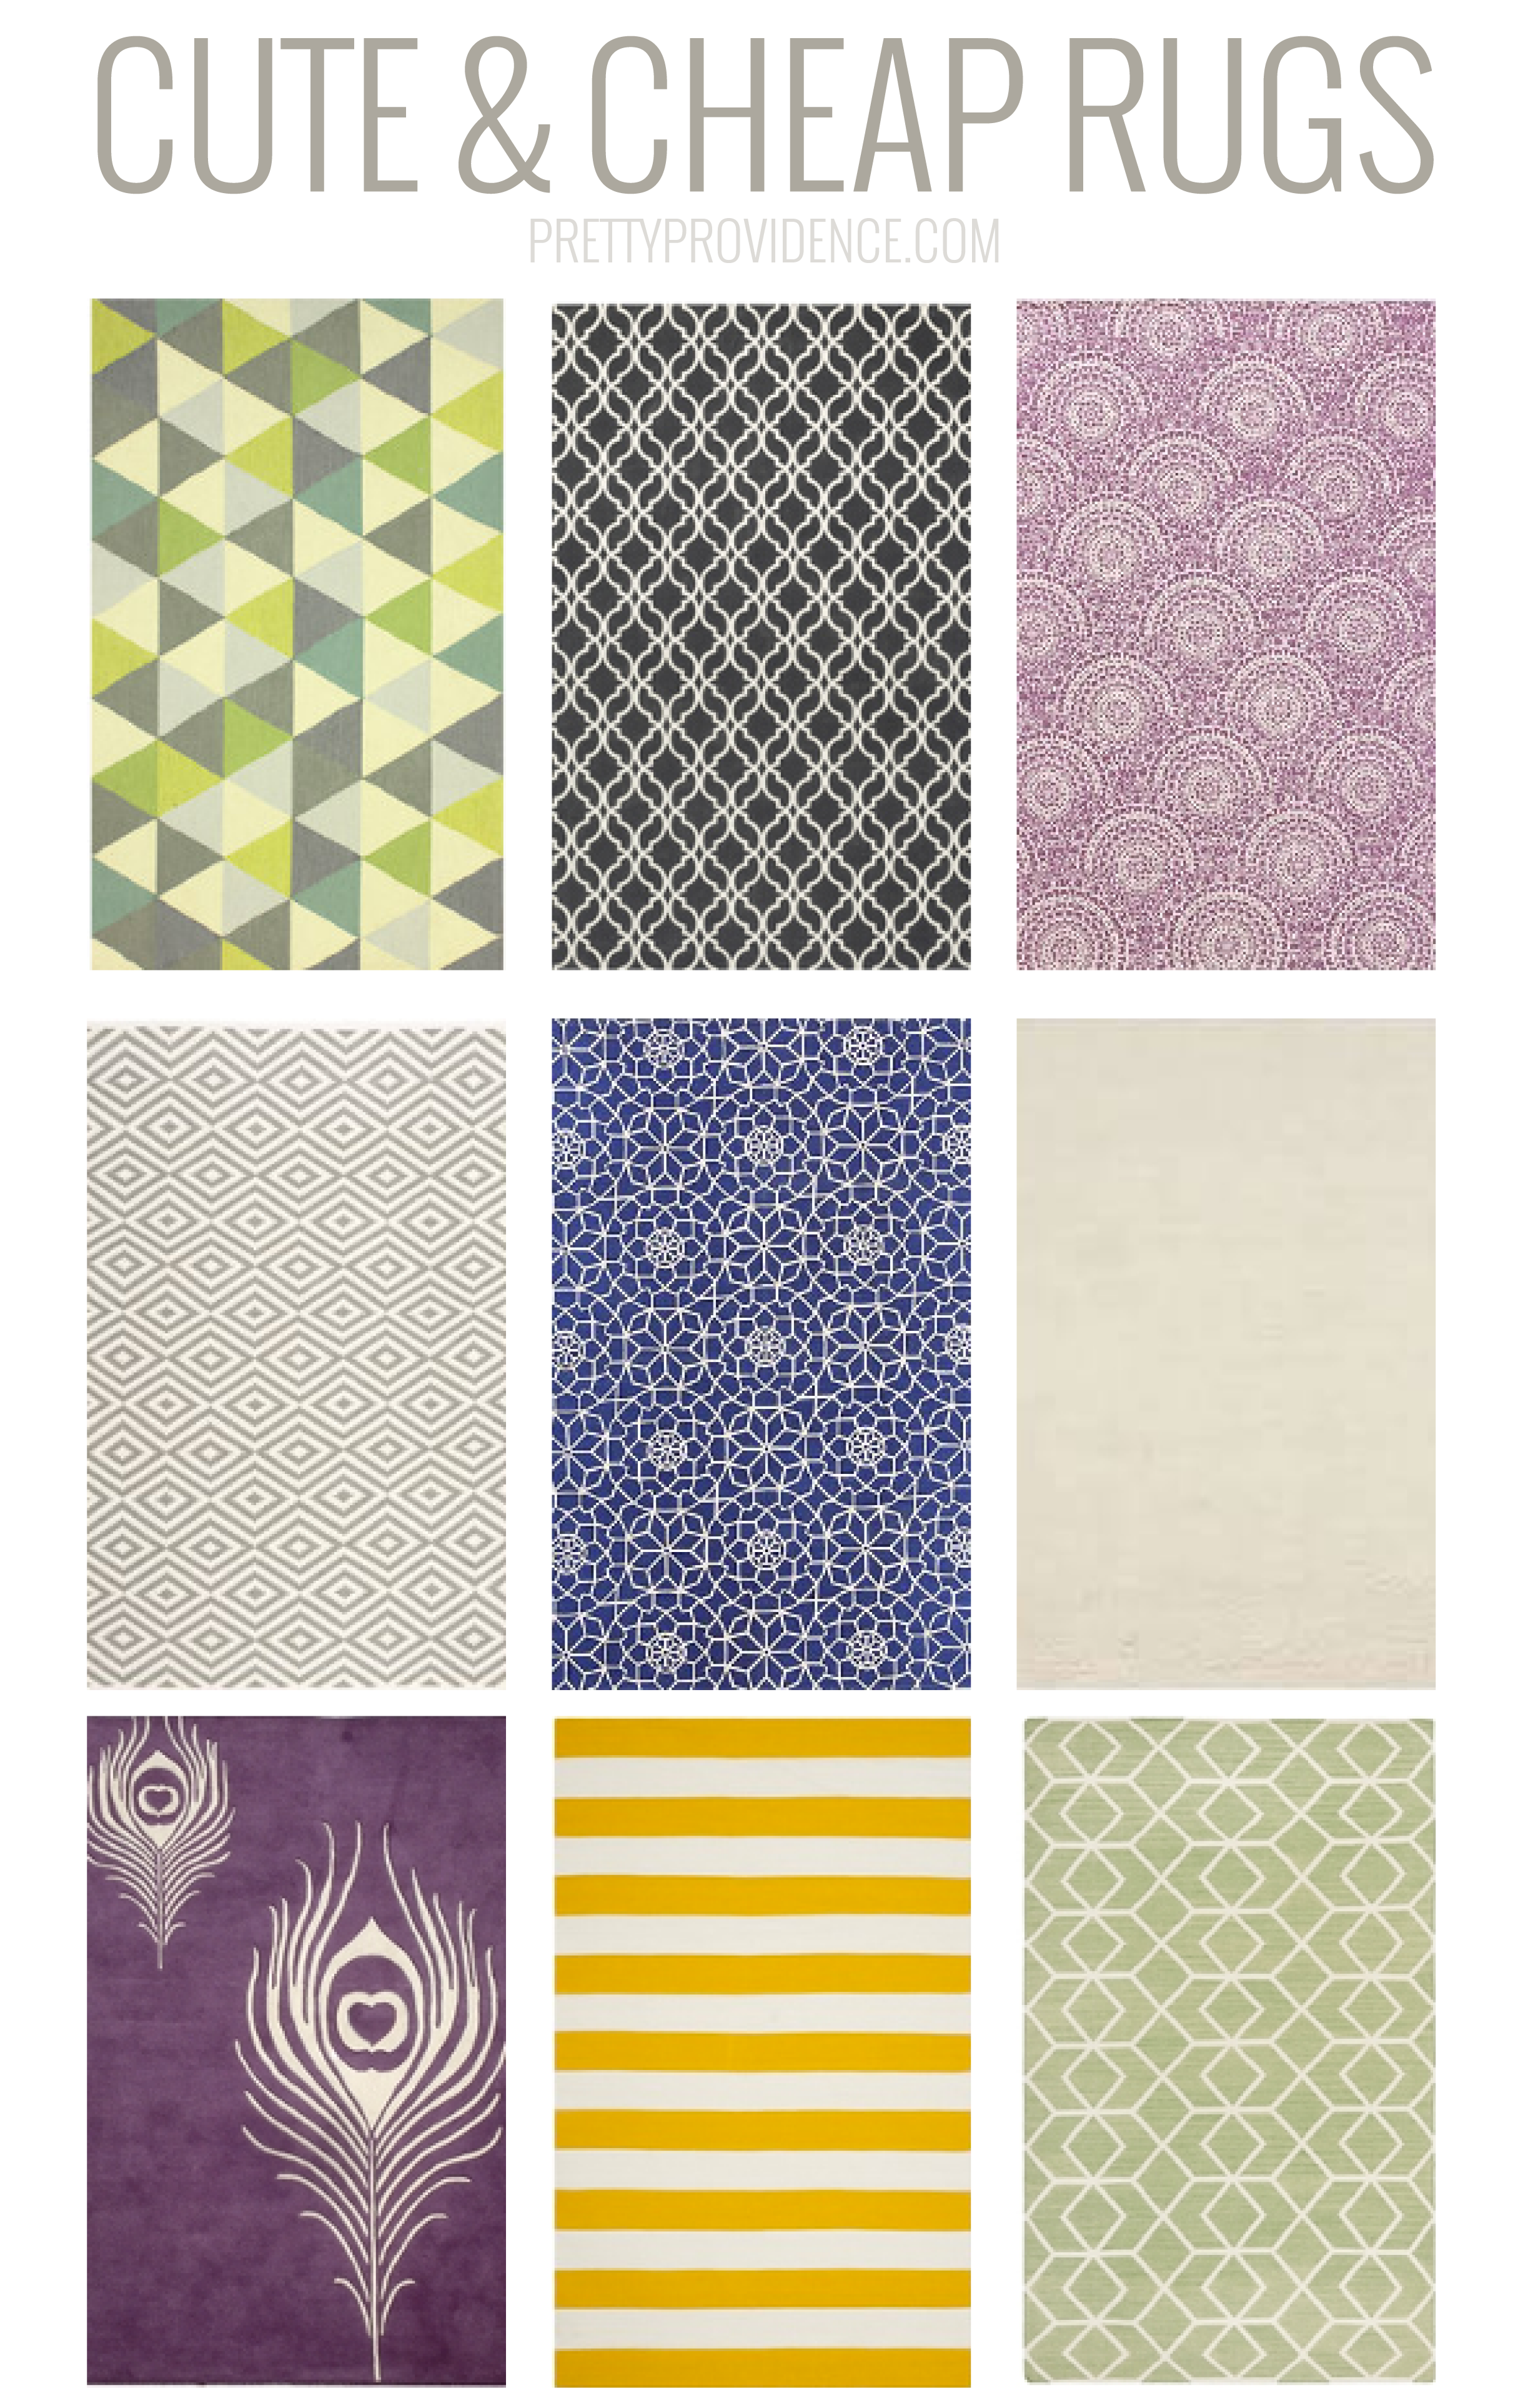 Best place to buy an area rug - Cute Cheap Rugs Roundup 6